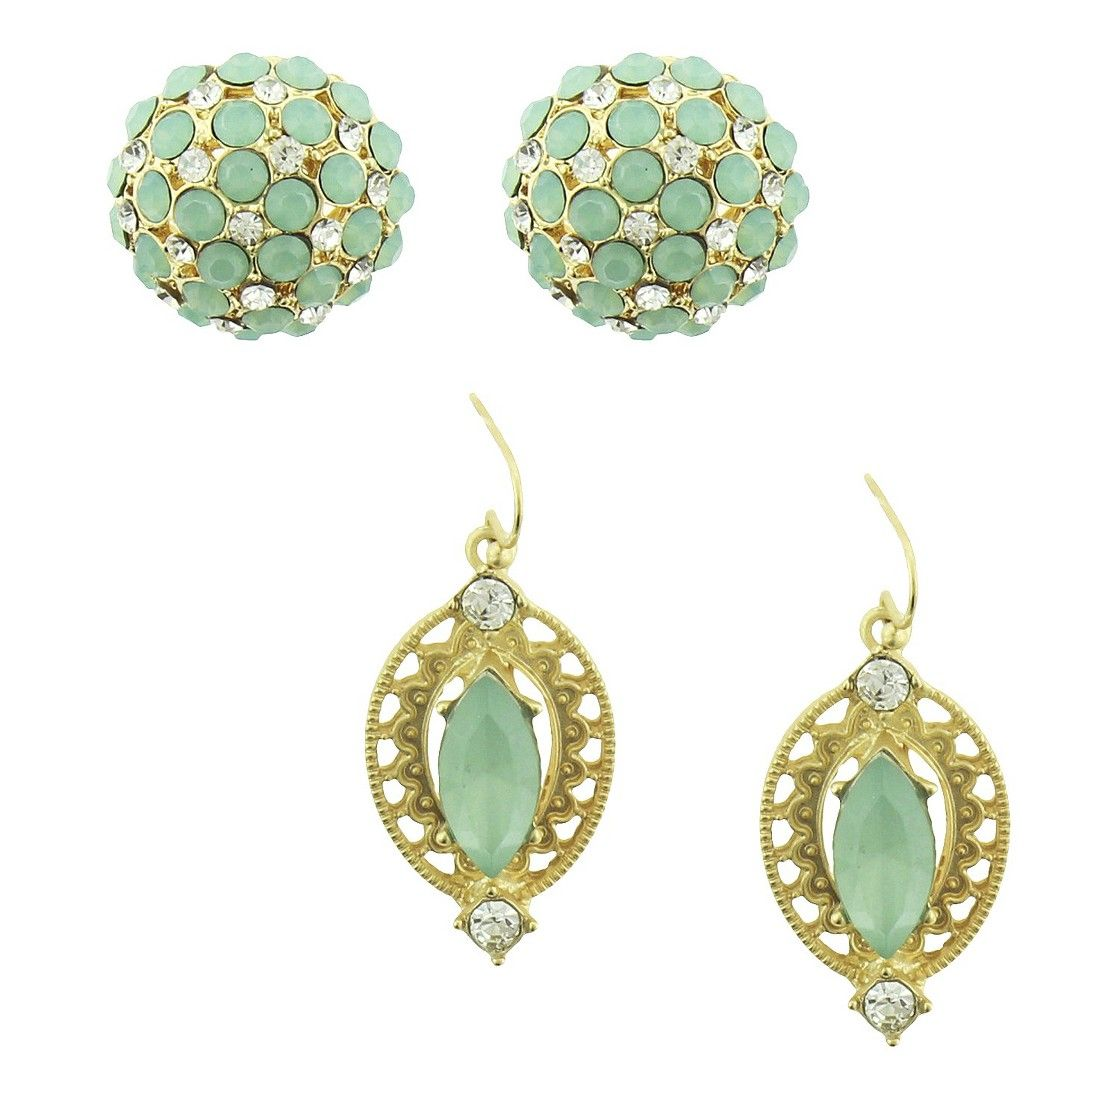 Women's Earring Set with Domed Fireball Studs and Marquis Stone Drops - Gold/Green